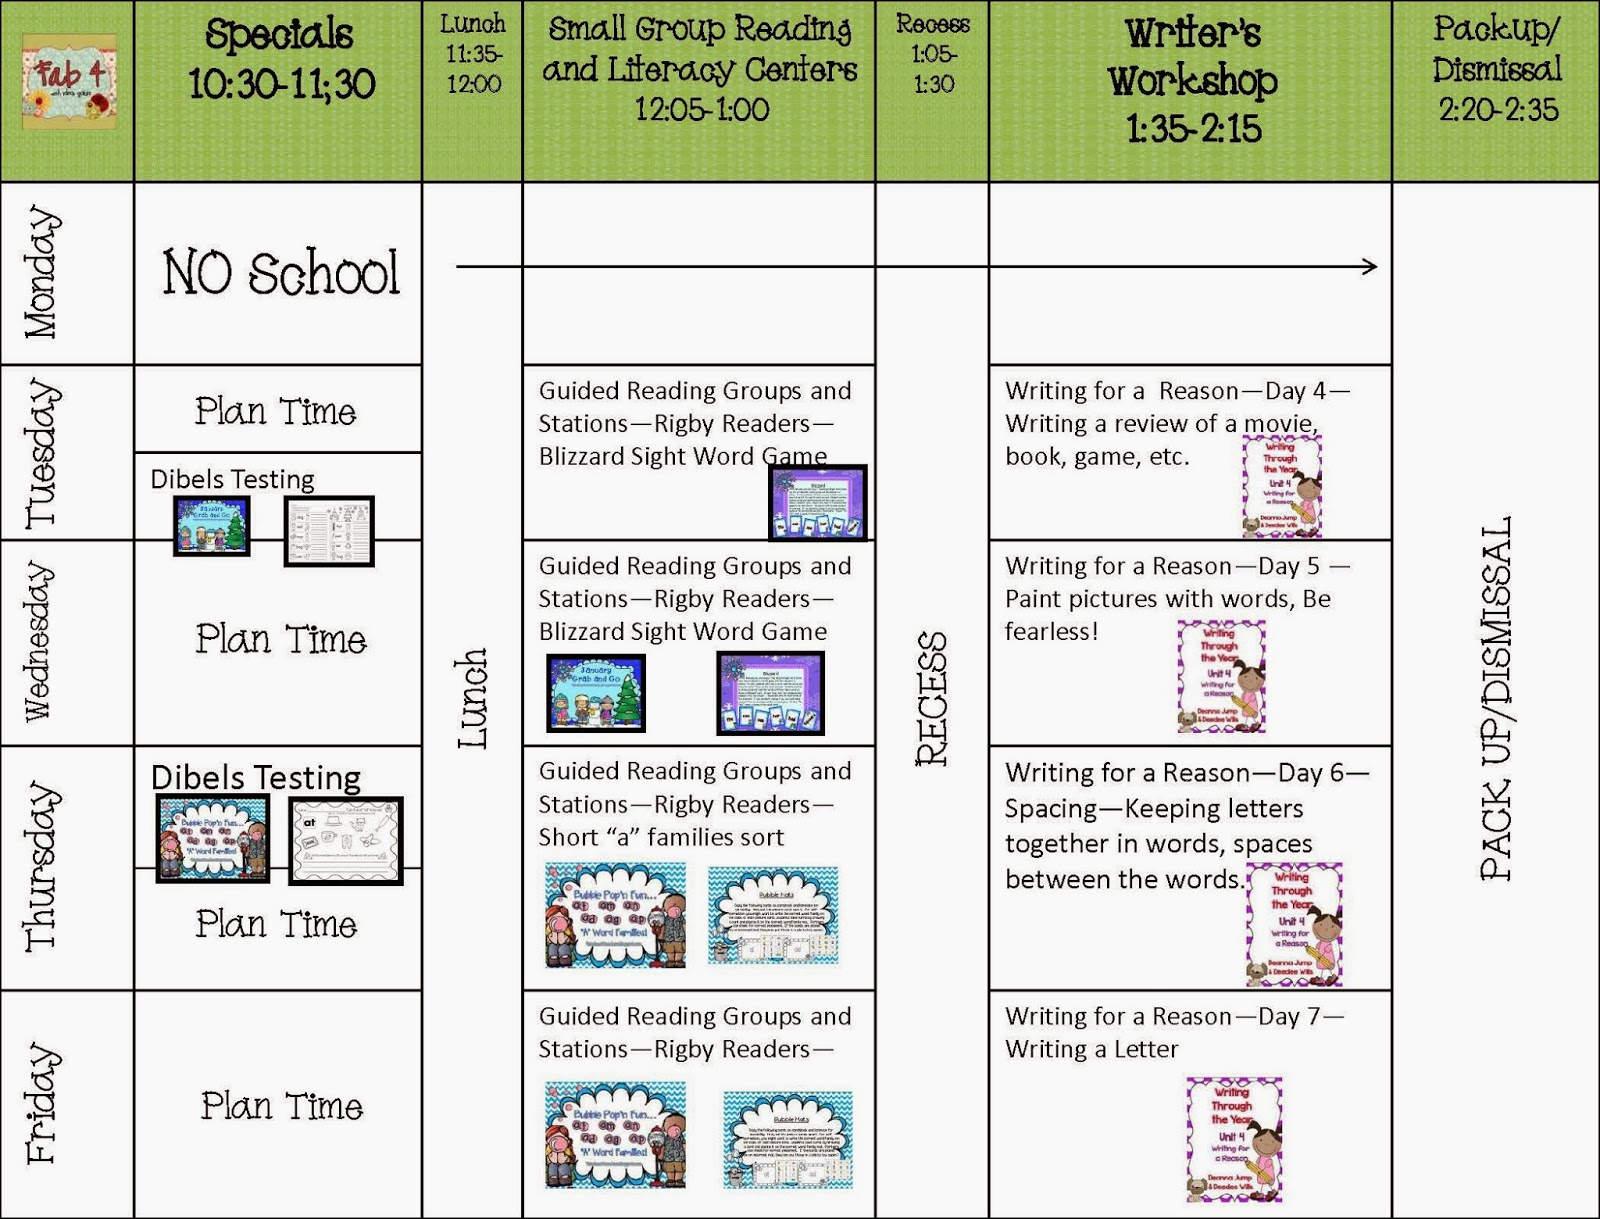 Lesson Plans for the week of January 21, 2014